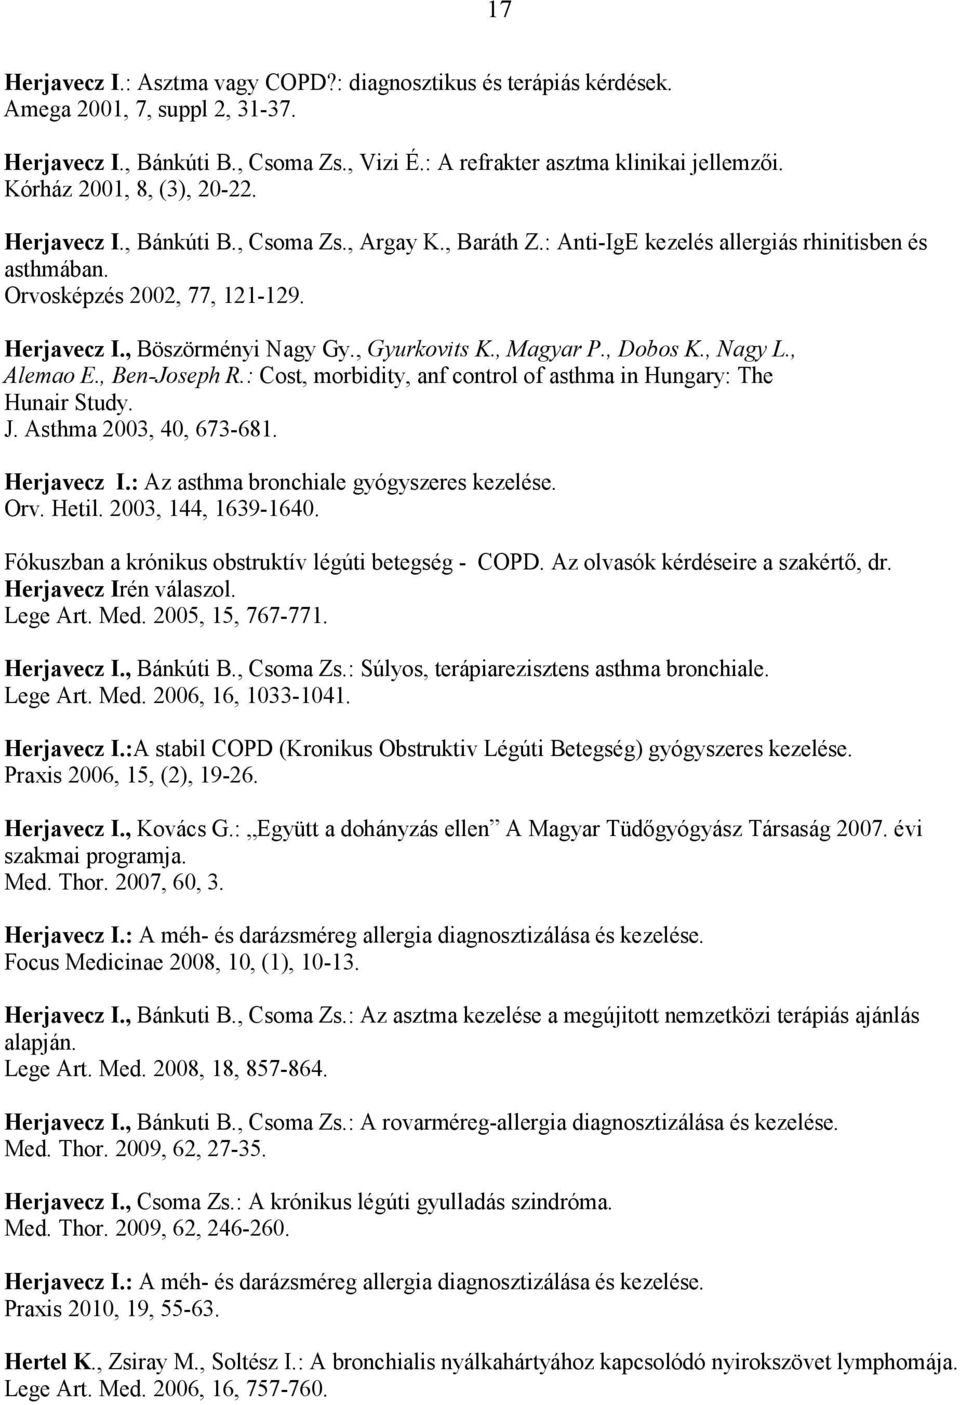 , Gyurkovits K., Magyar P., Dobos K., Nagy L., Alemao E., Ben-Joseph R.: Cost, morbidity, anf control of asthma in Hungary: The Hunair Study. J. Asthma 2003, 40, 673-681. Herjavecz I.